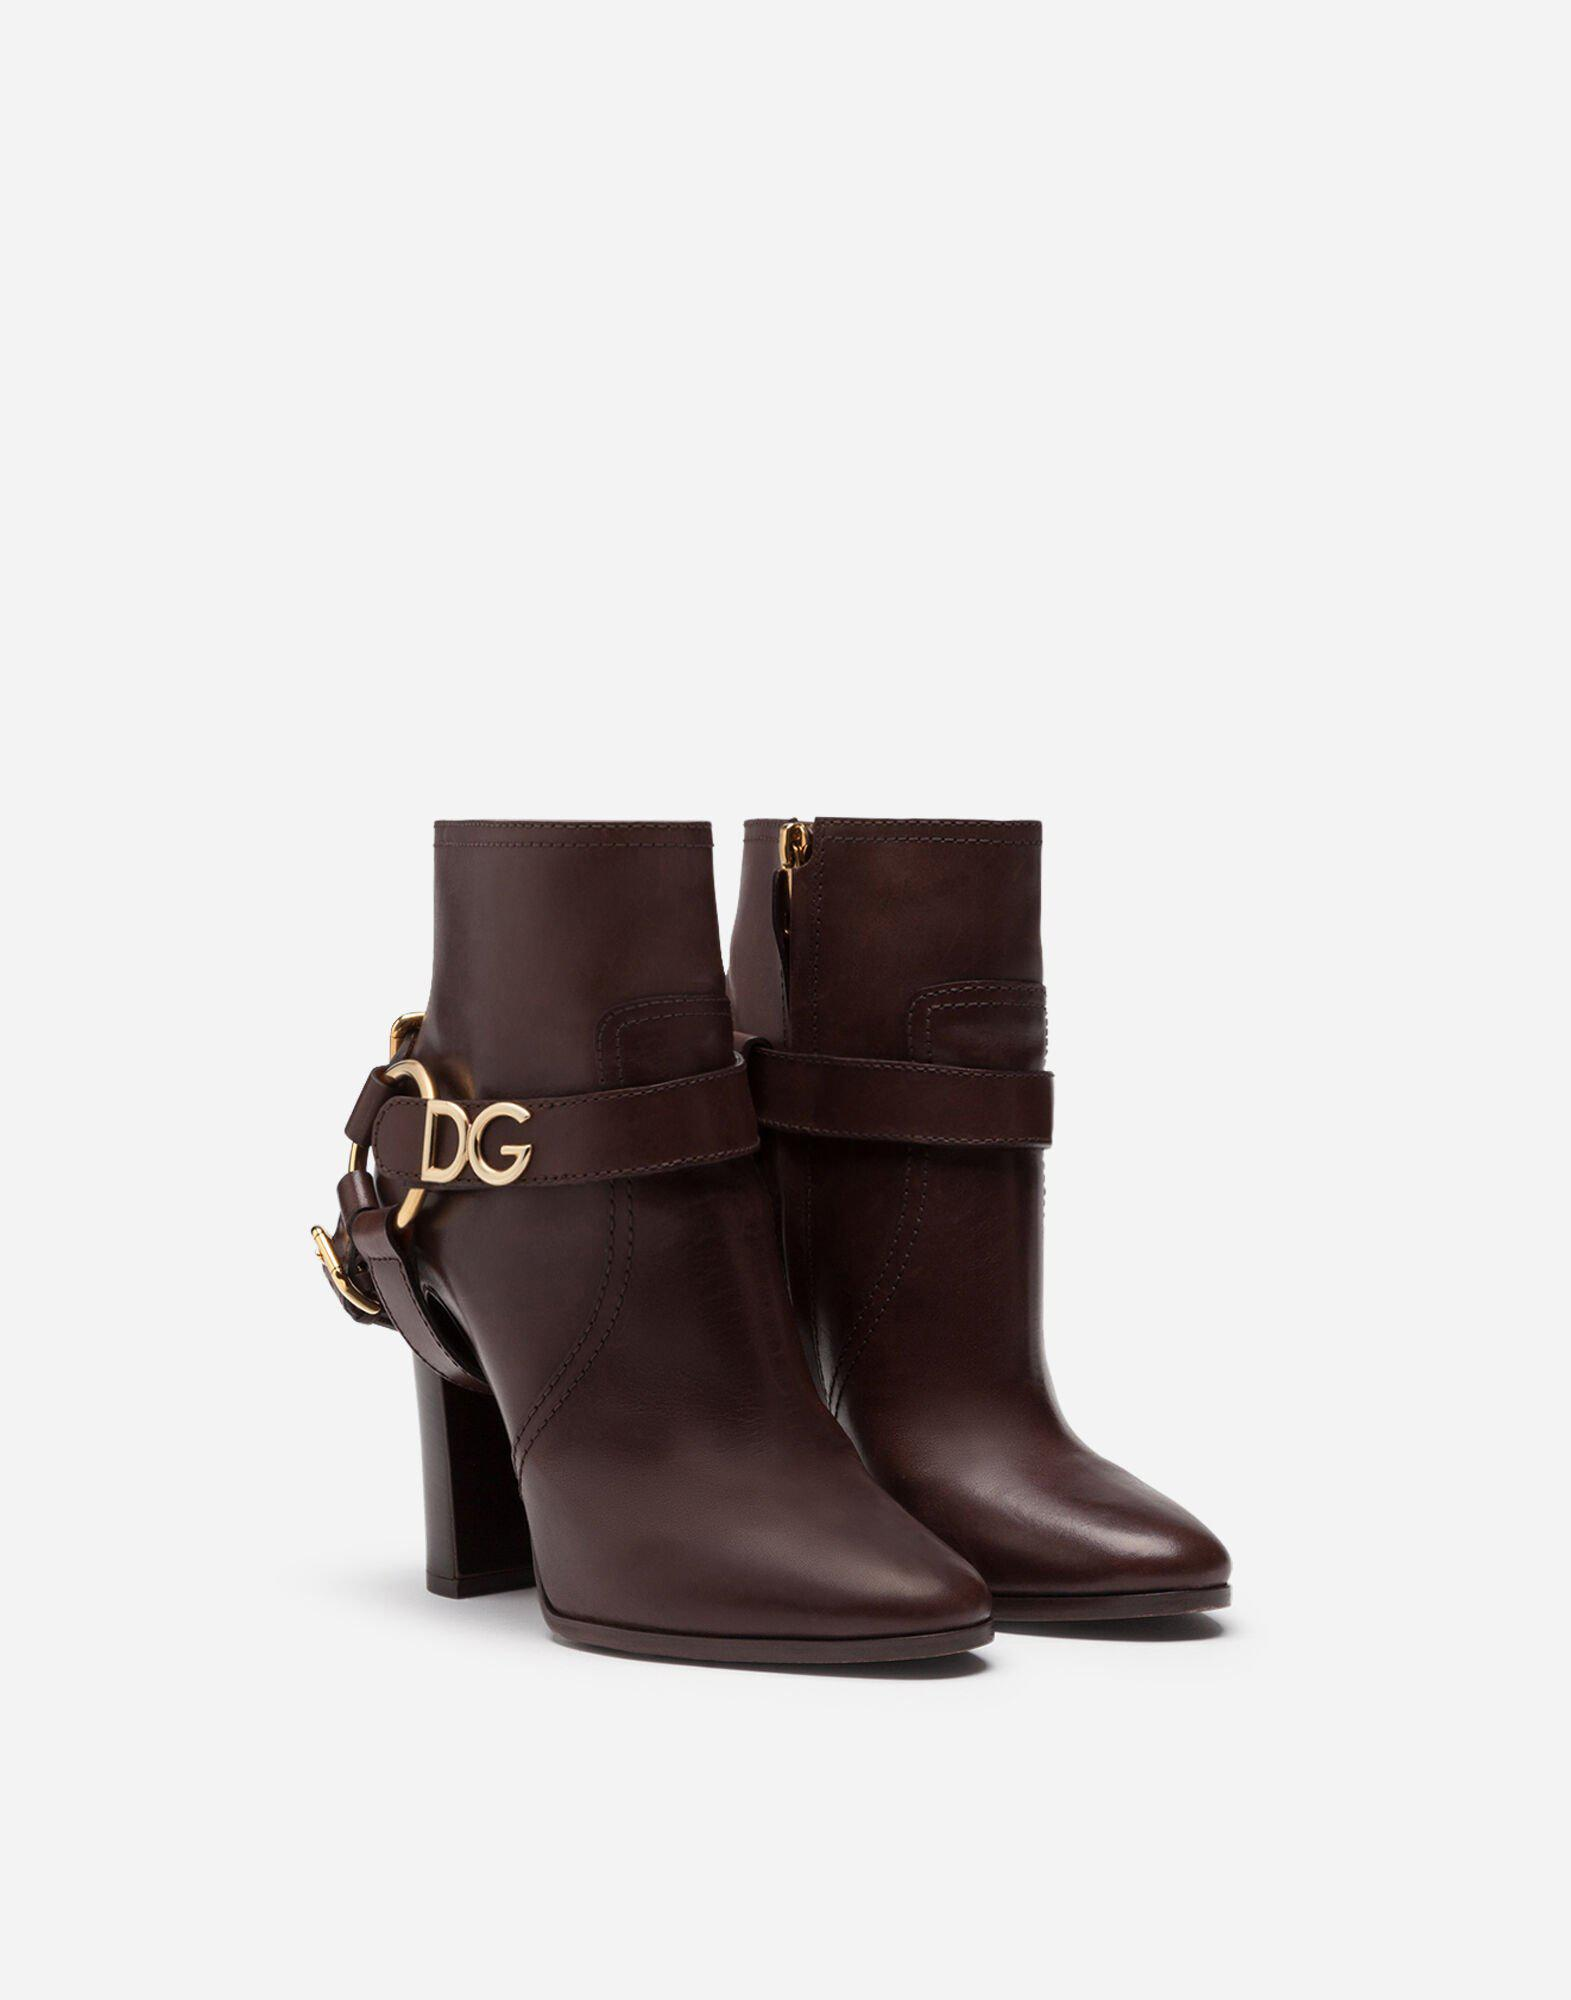 Ankle boots in cowhide with DG bracket logo 1